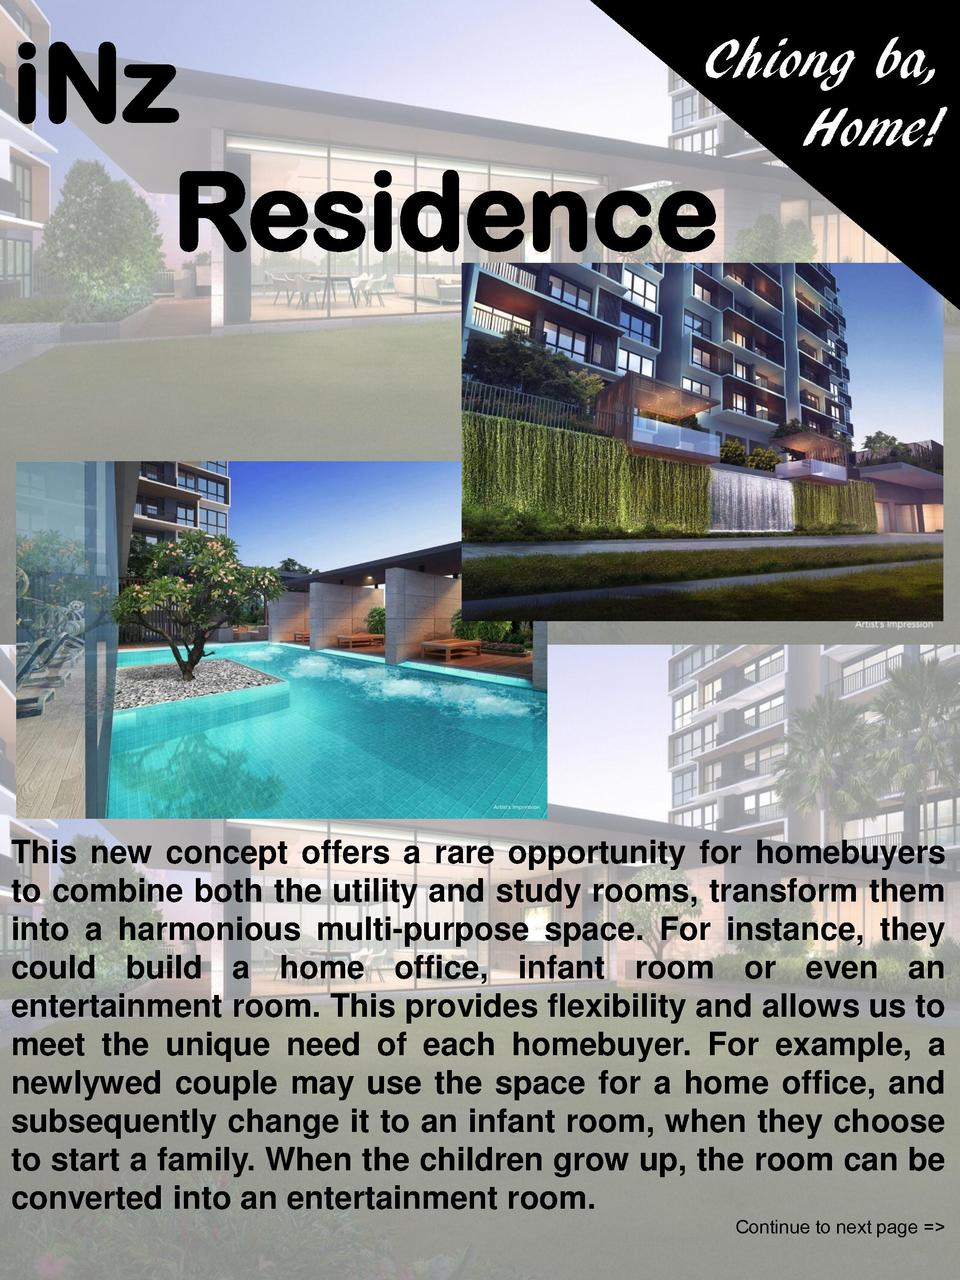 iNz Residence  Chiong ba, Home   This new concept offers a rare opportunity for homebuyers to combine both the utility and...